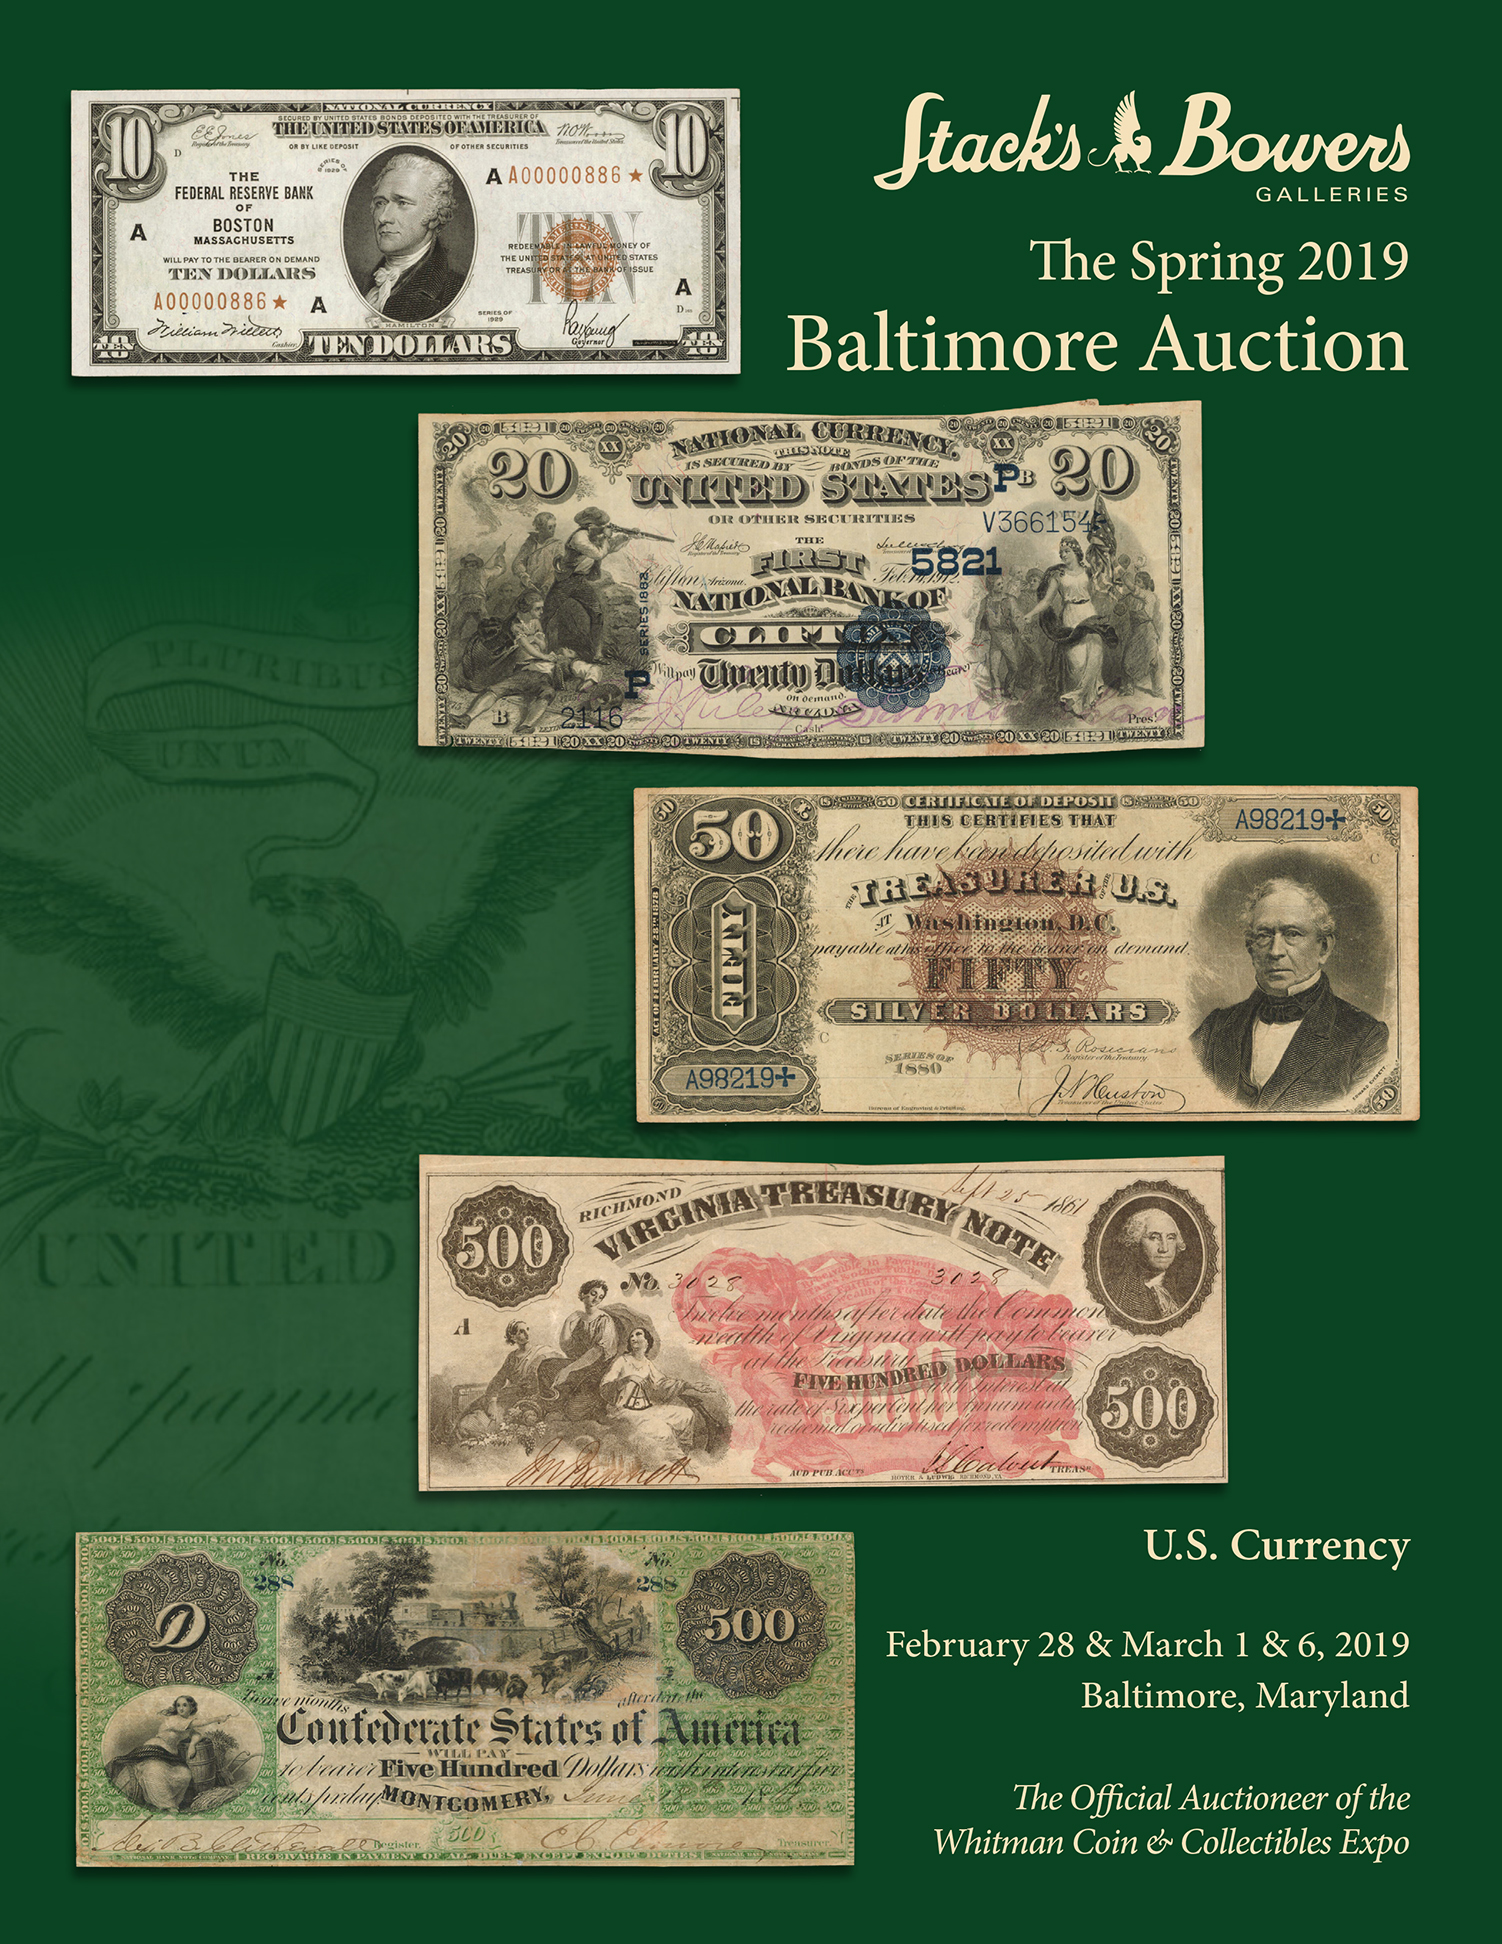 Stack's Bowers Galleries Spring 2019 Baltimore Auction